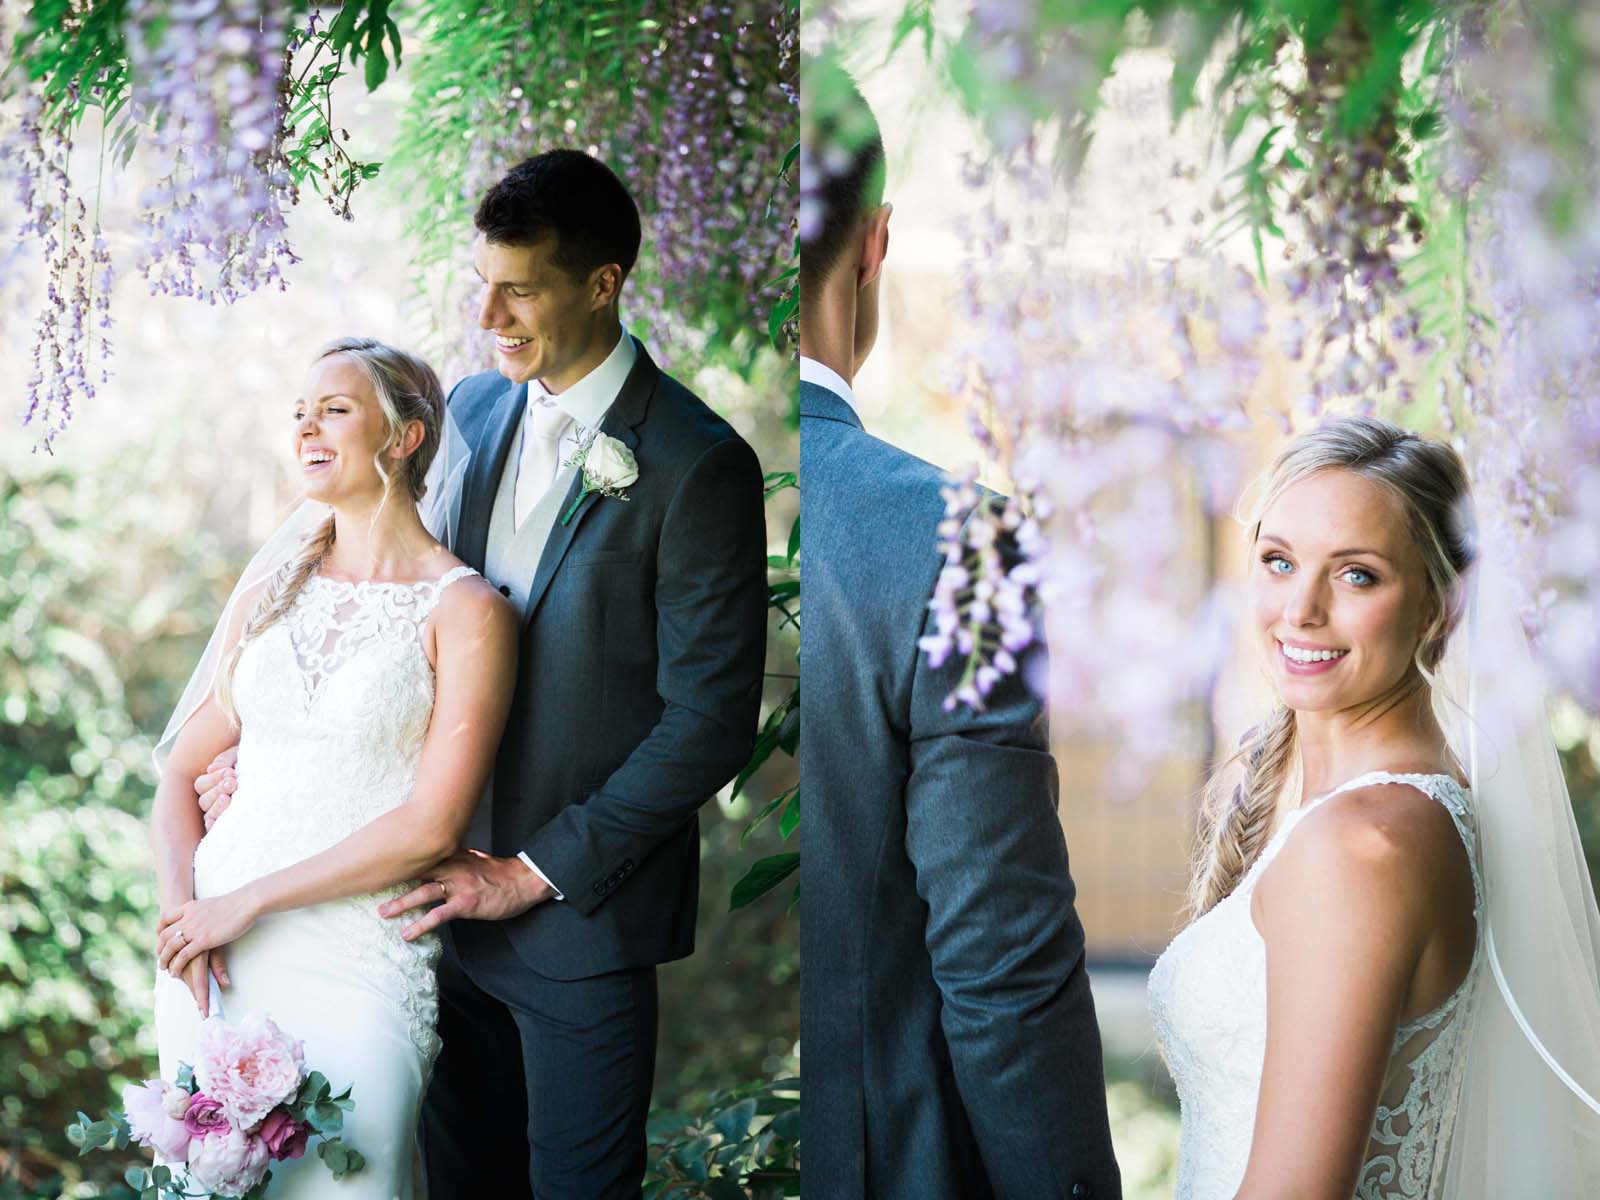 Notley Abbey Wedding Buckinghamshire Bride and Groom Wisteria